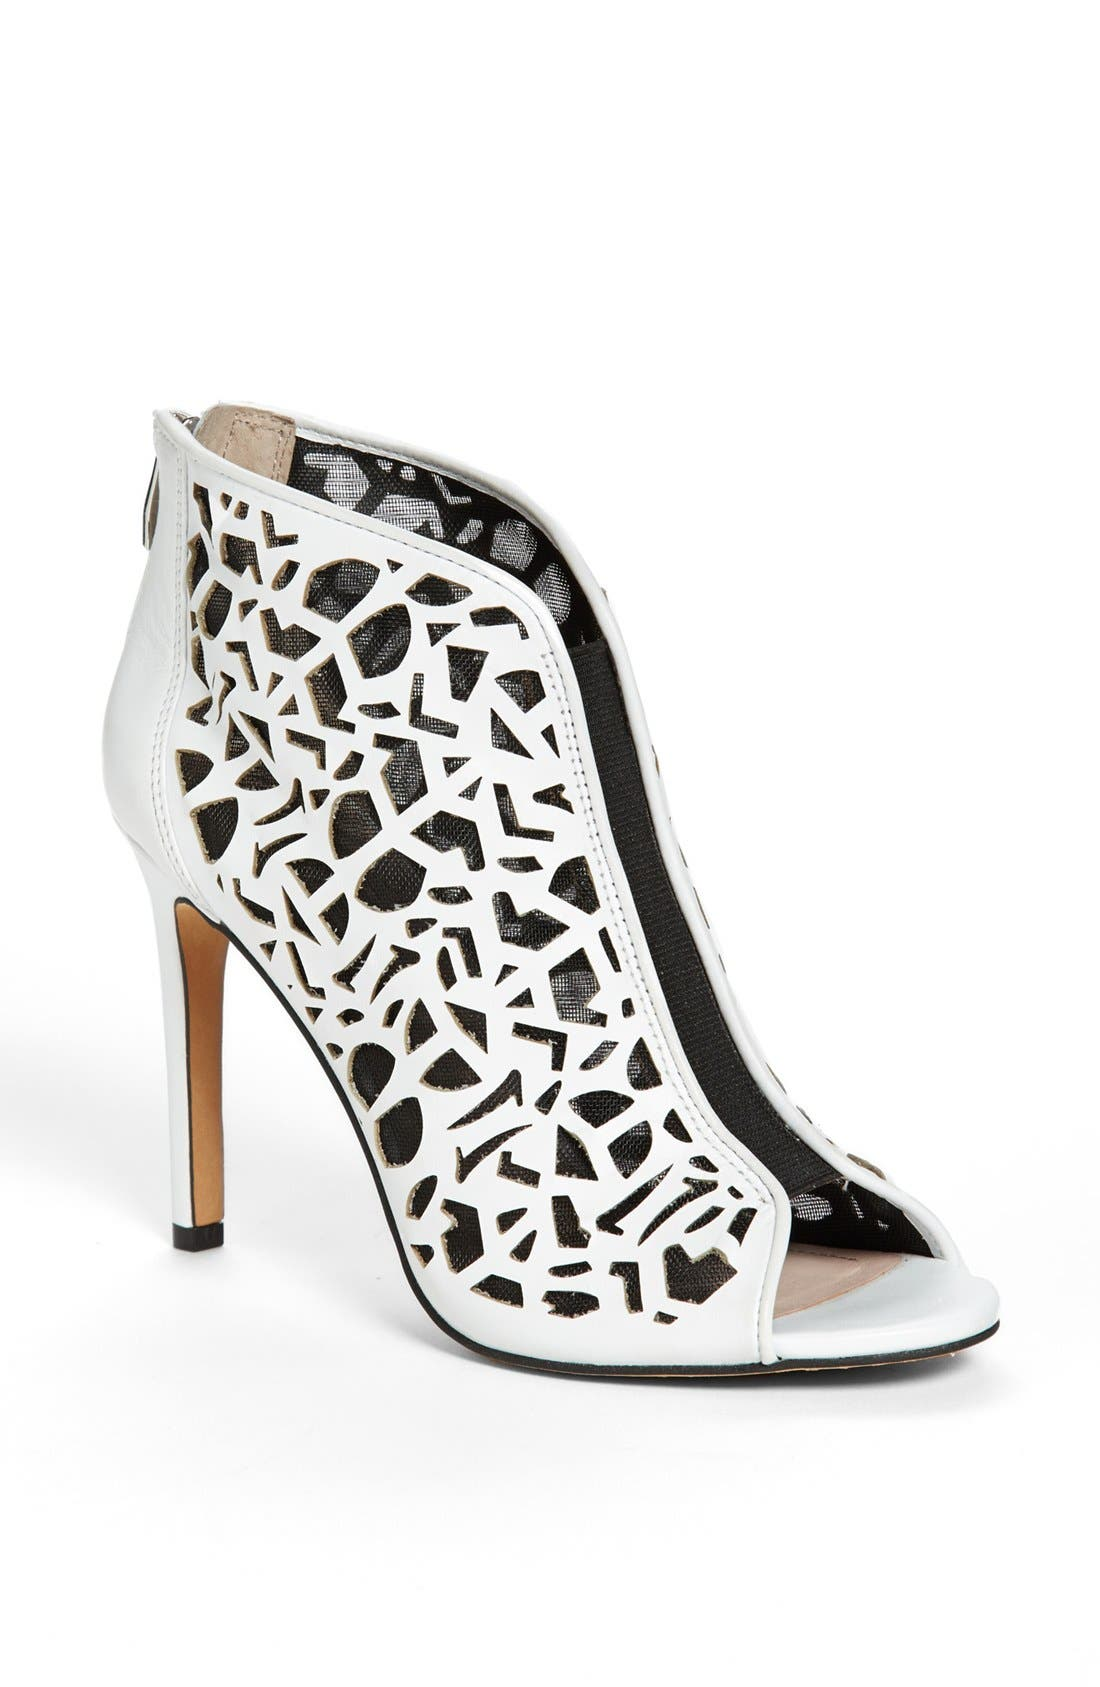 Alternate Image 1 Selected - Vince Camuto 'Kalista' Peep Toe Leather Bootie